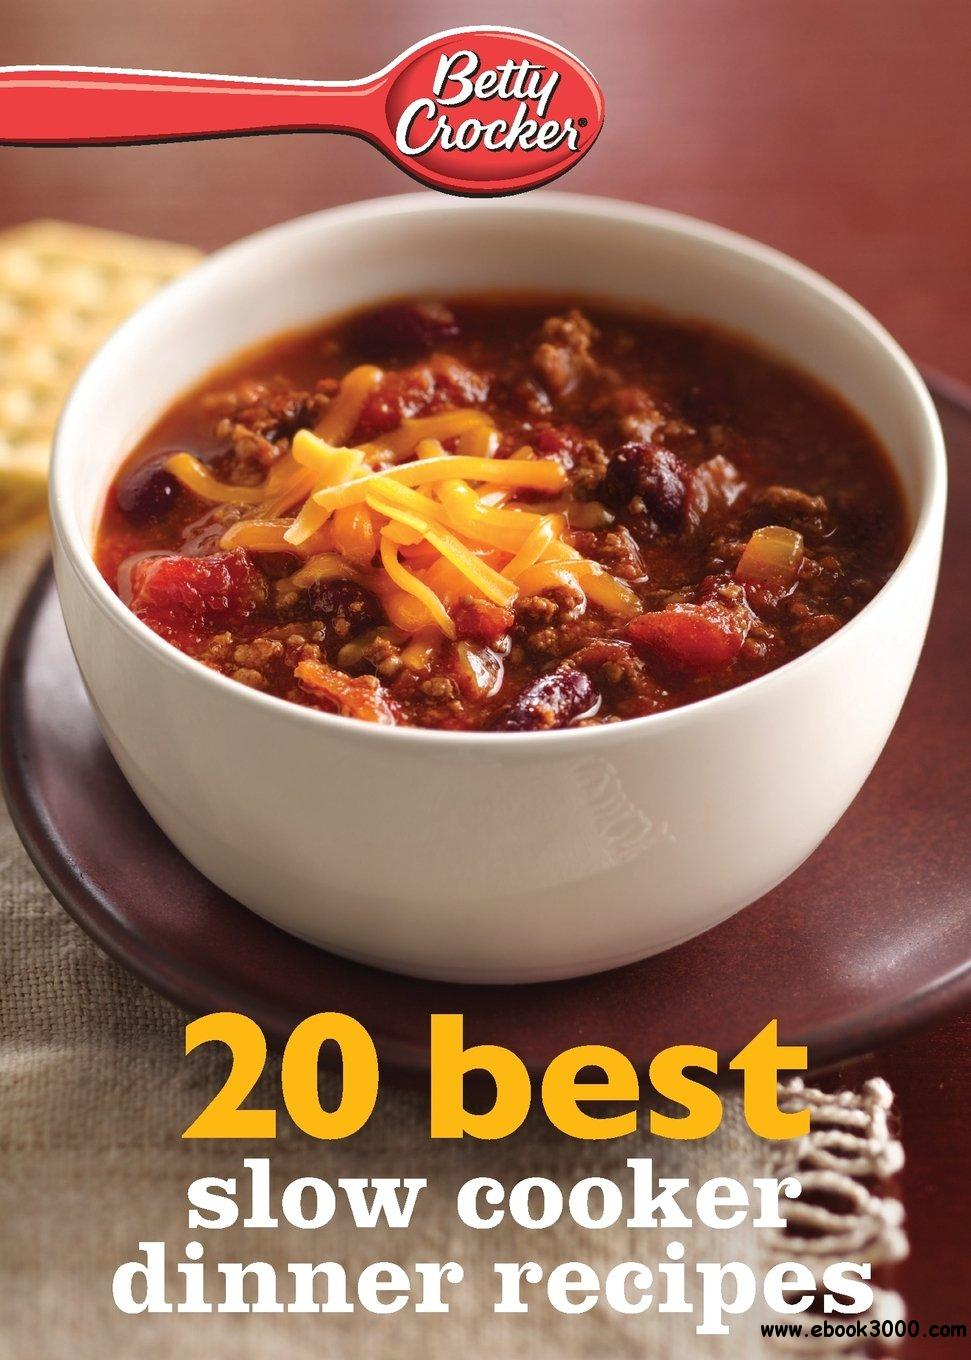 Betty Crocker 20 Best Slow Cooker Dinner Recipes free download